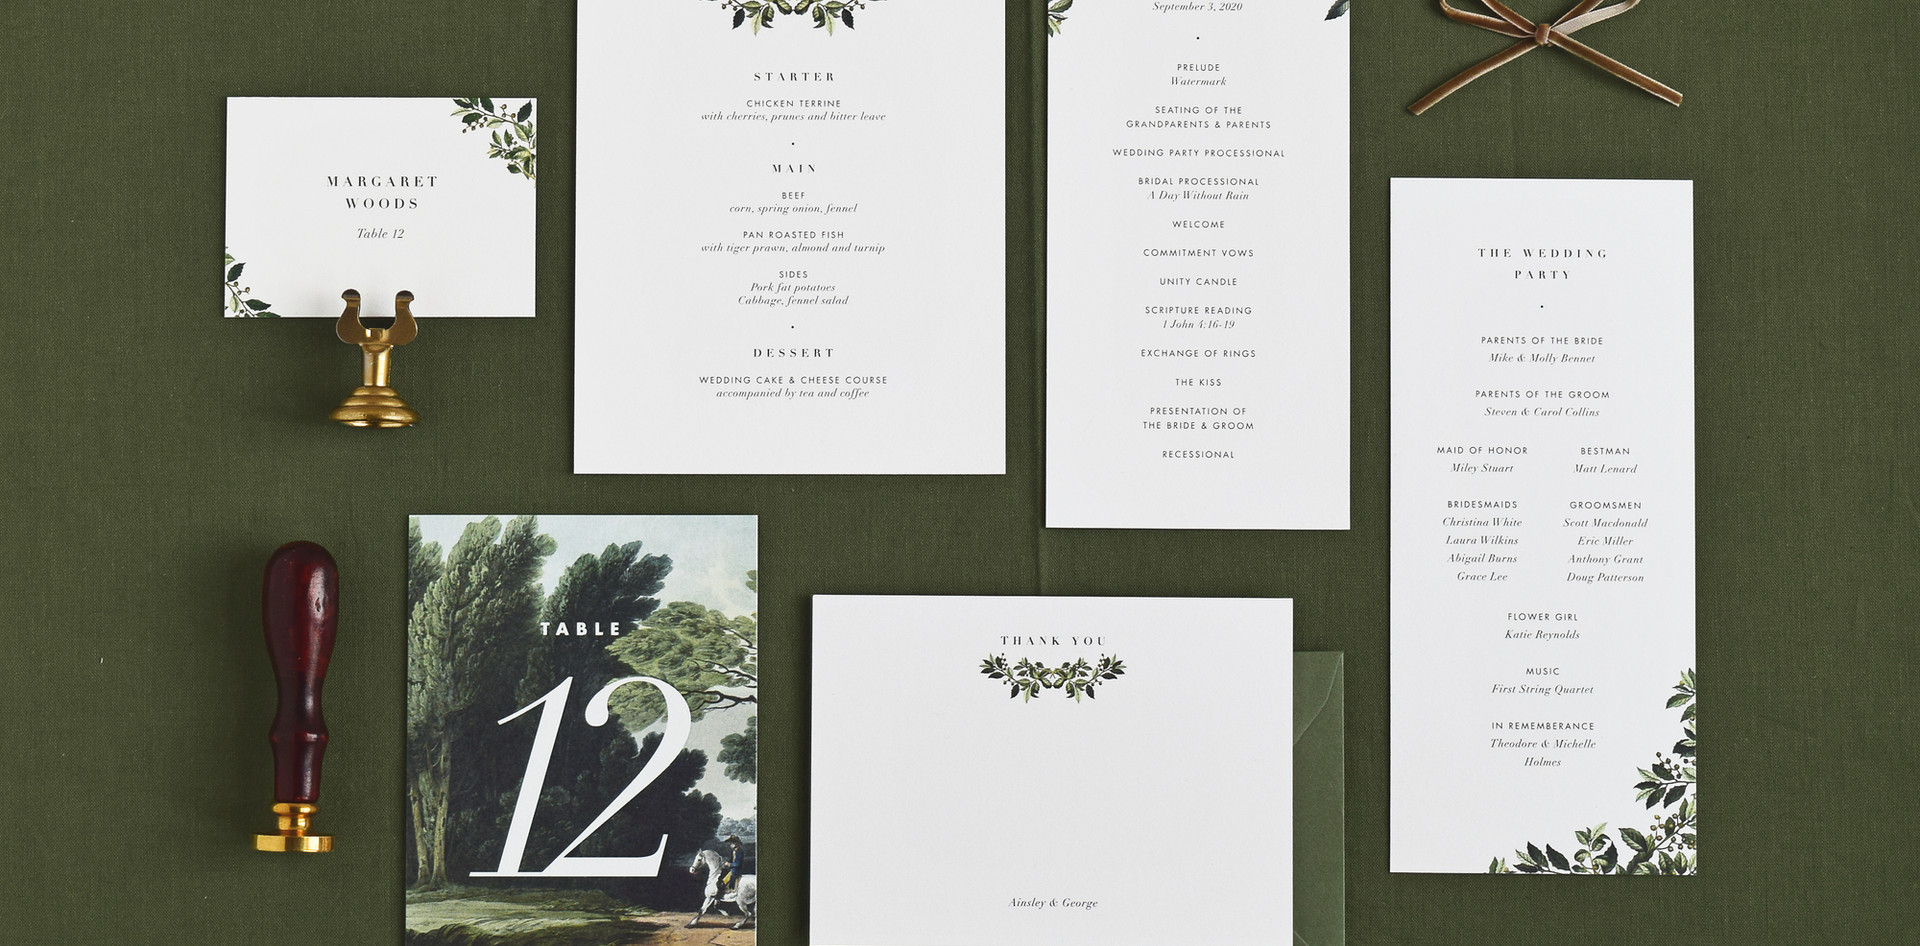 Ainsley menu card, program card, table number, place card, and thank you card